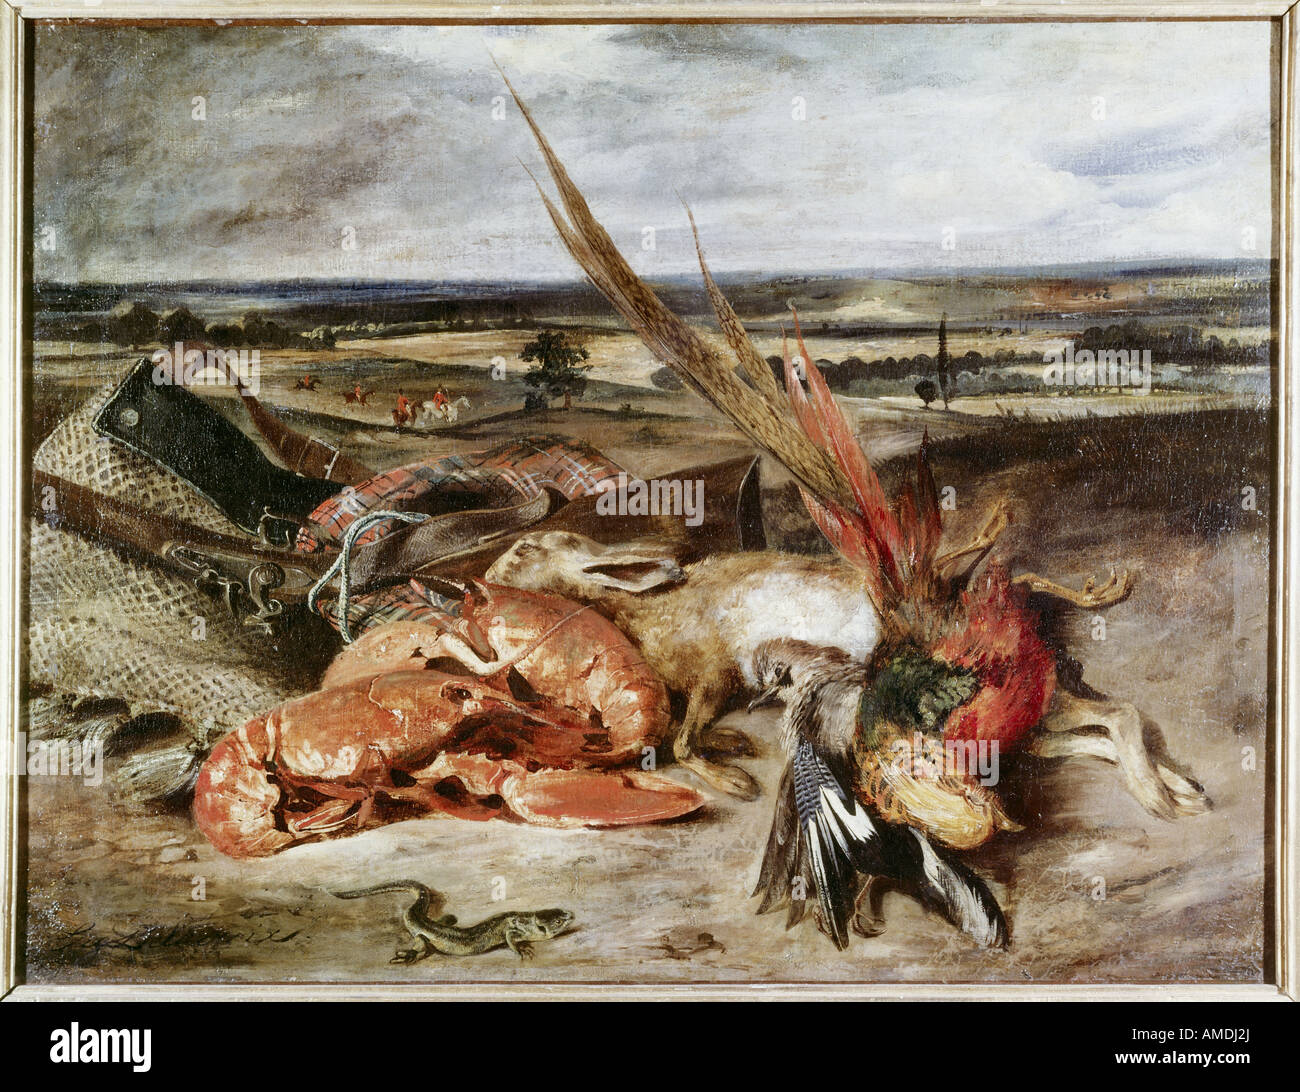 """fine arts, Delacroix, Eugene (1798 - 1863), painting, ""Still Life with Lobsters"", 1826/1827, oil on canvas, Louvre, Stock Photo"